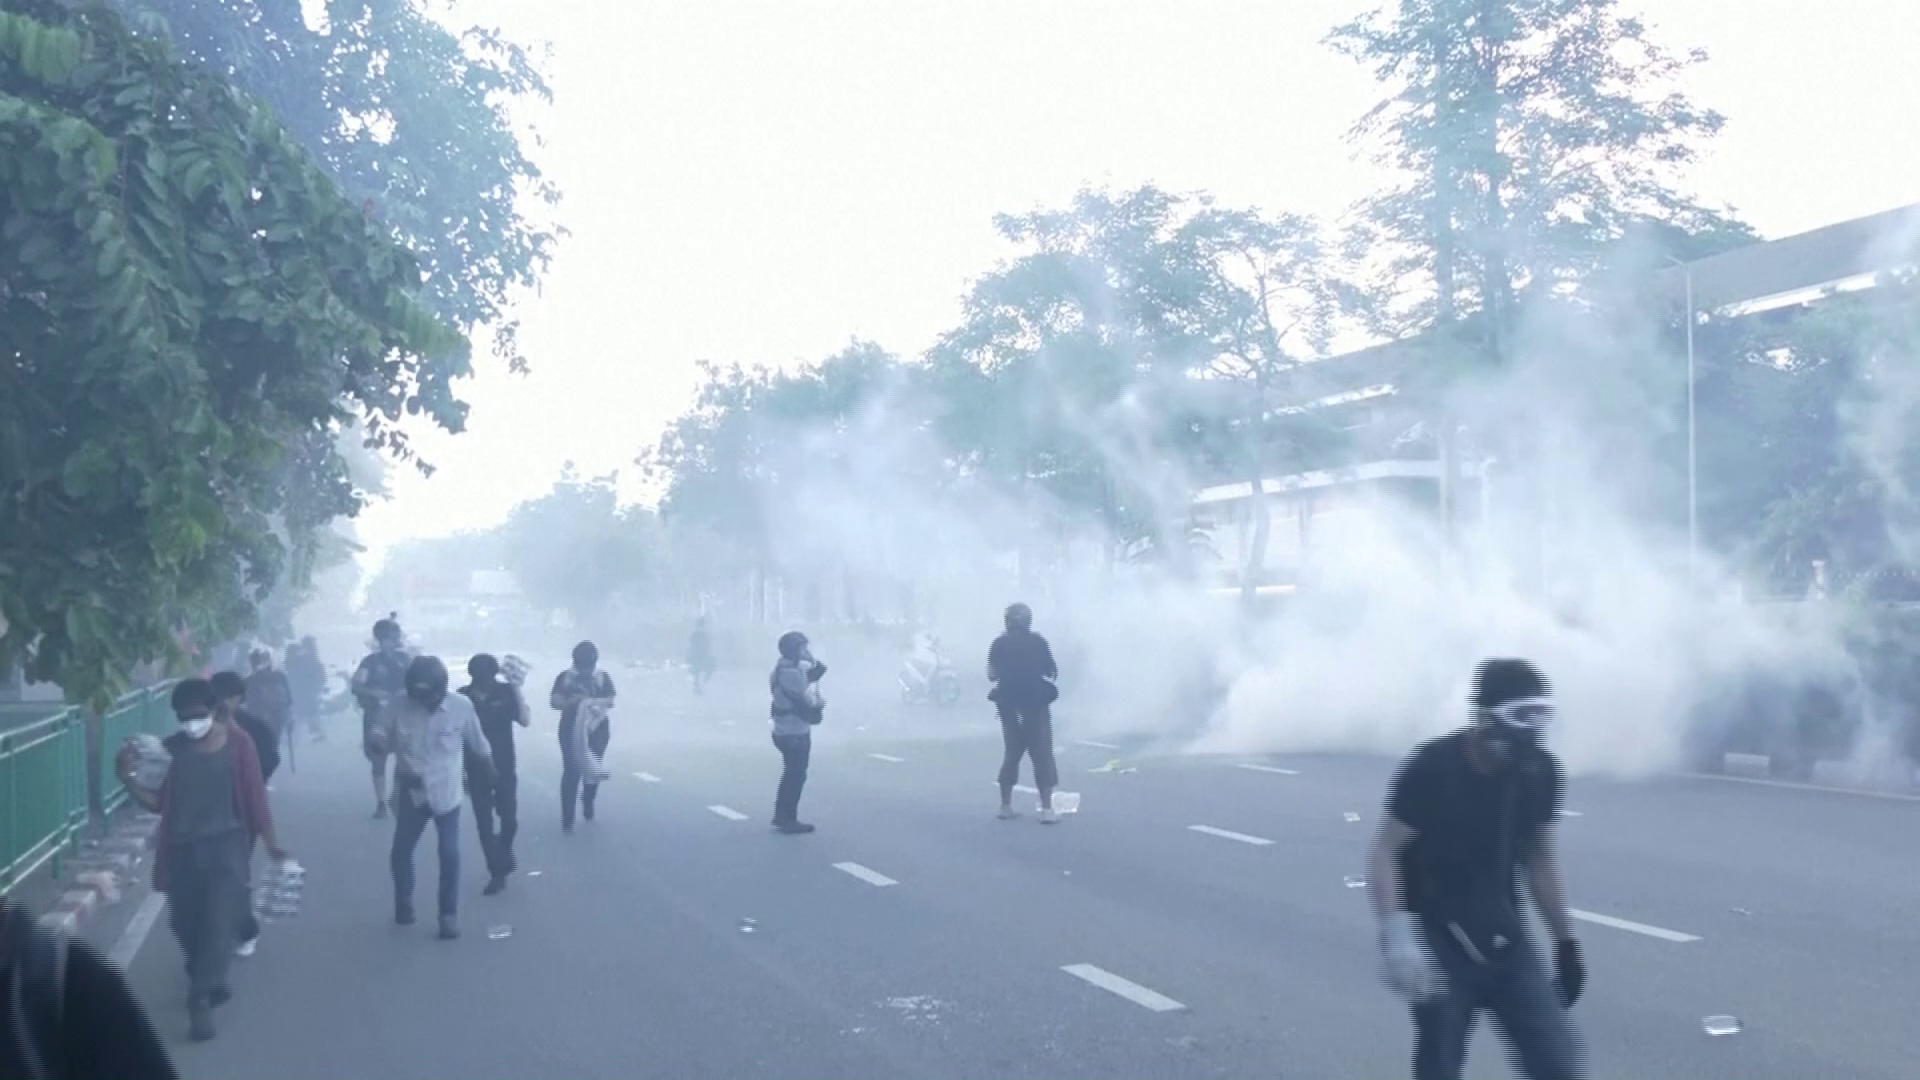 Clashes in Thailand as pressure builds on PM over coronavirus crisis